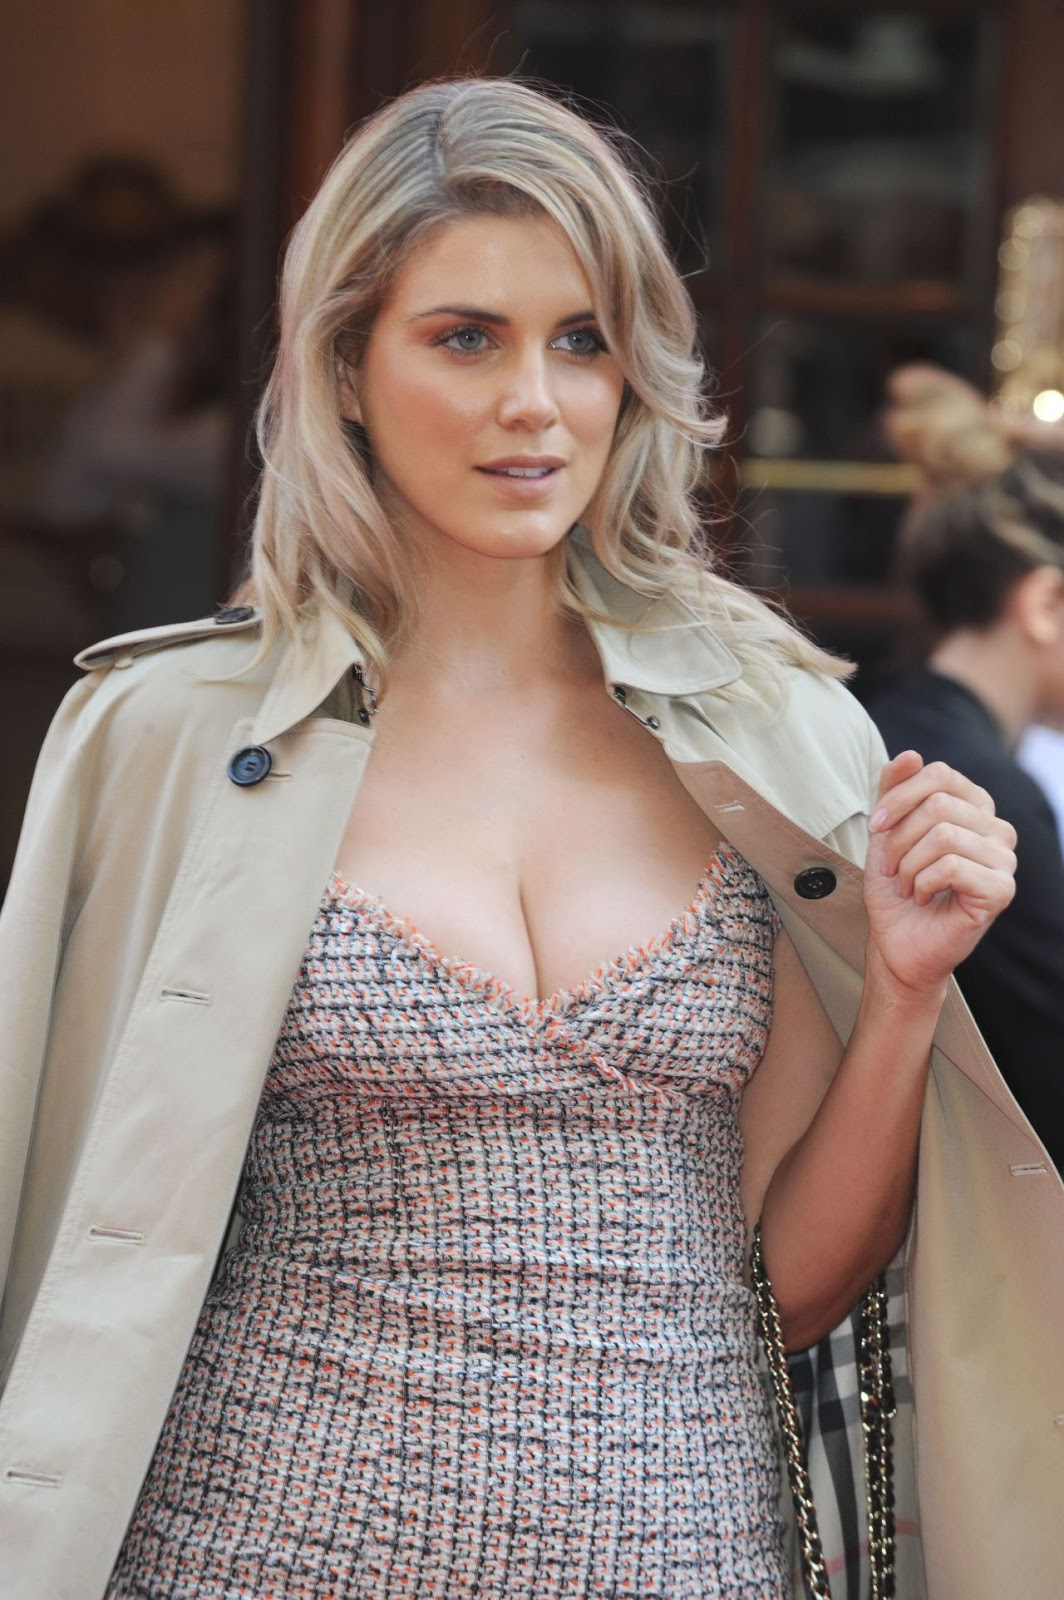 Ashley James nudes (84 pics), pictures Pussy, iCloud, panties 2020